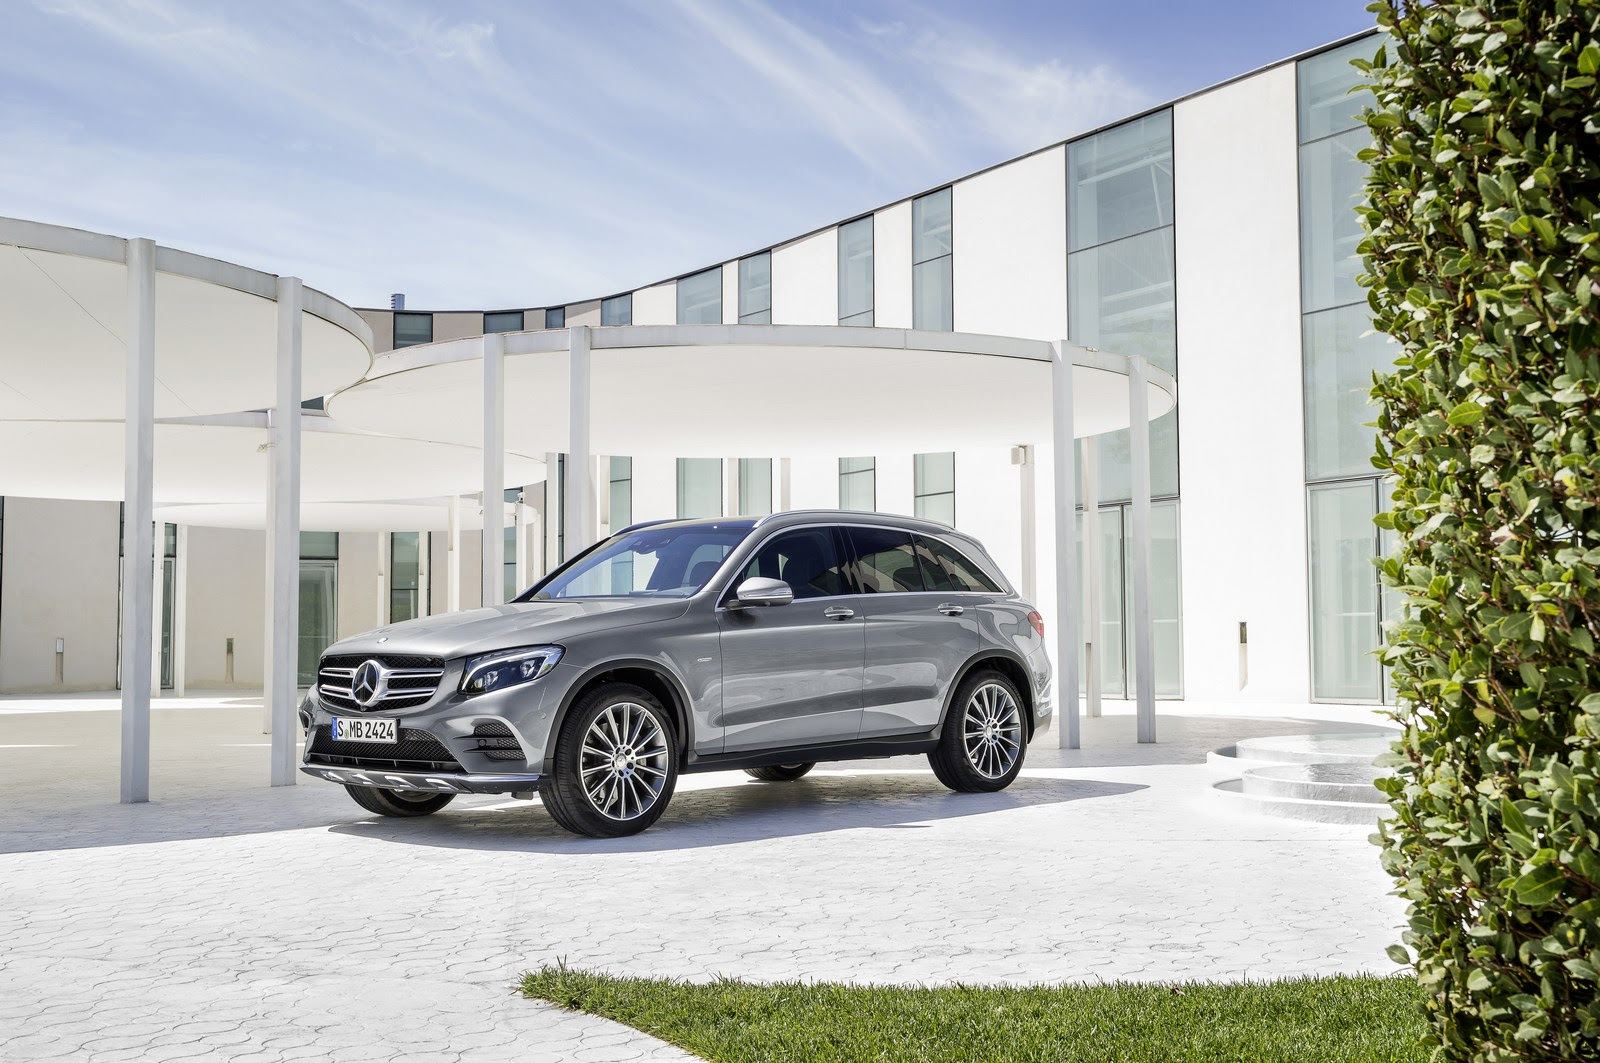 Mercedes GLC 350e PHEV Priced From $49,990 In The U.S ...